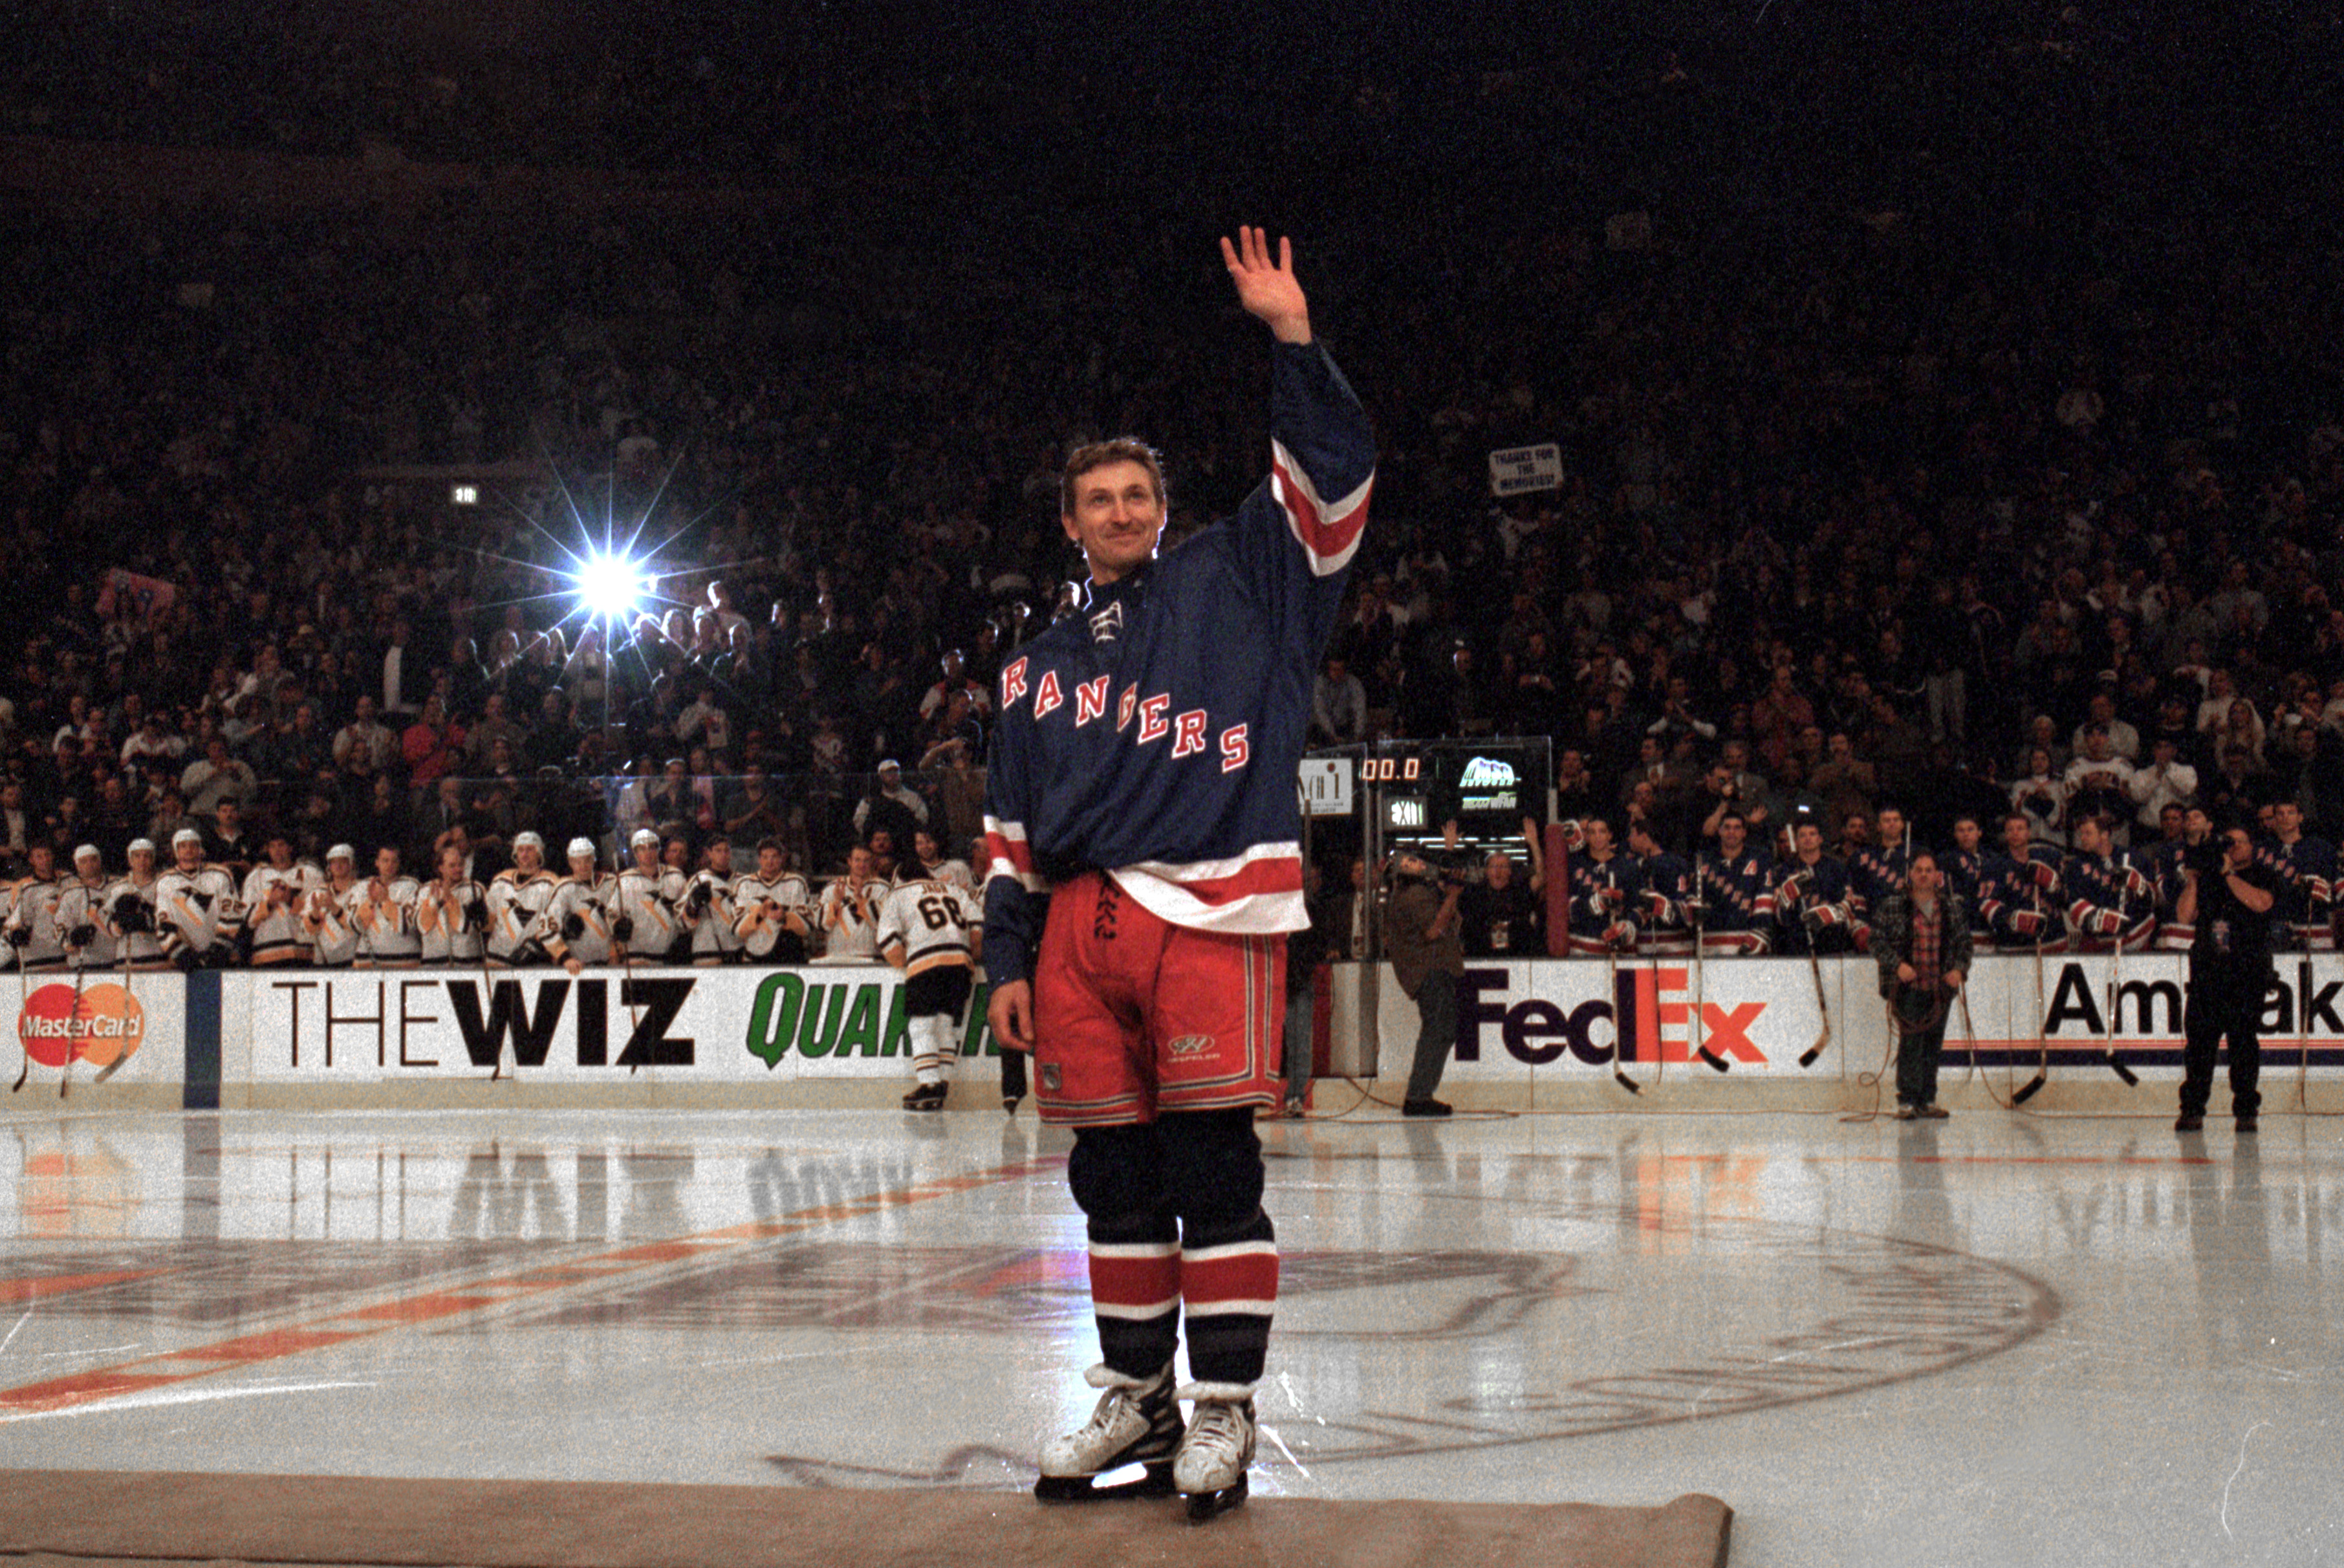 NEW YORK, NY - APRIL 18:  Wayne Gretzky #99 of the New York Rangers acknowledges the crowd during introductions before playing in his final career game against the Pittsburgh Penguins at the Madison Square Garden on April 18, 1999 in New York City, New Yo